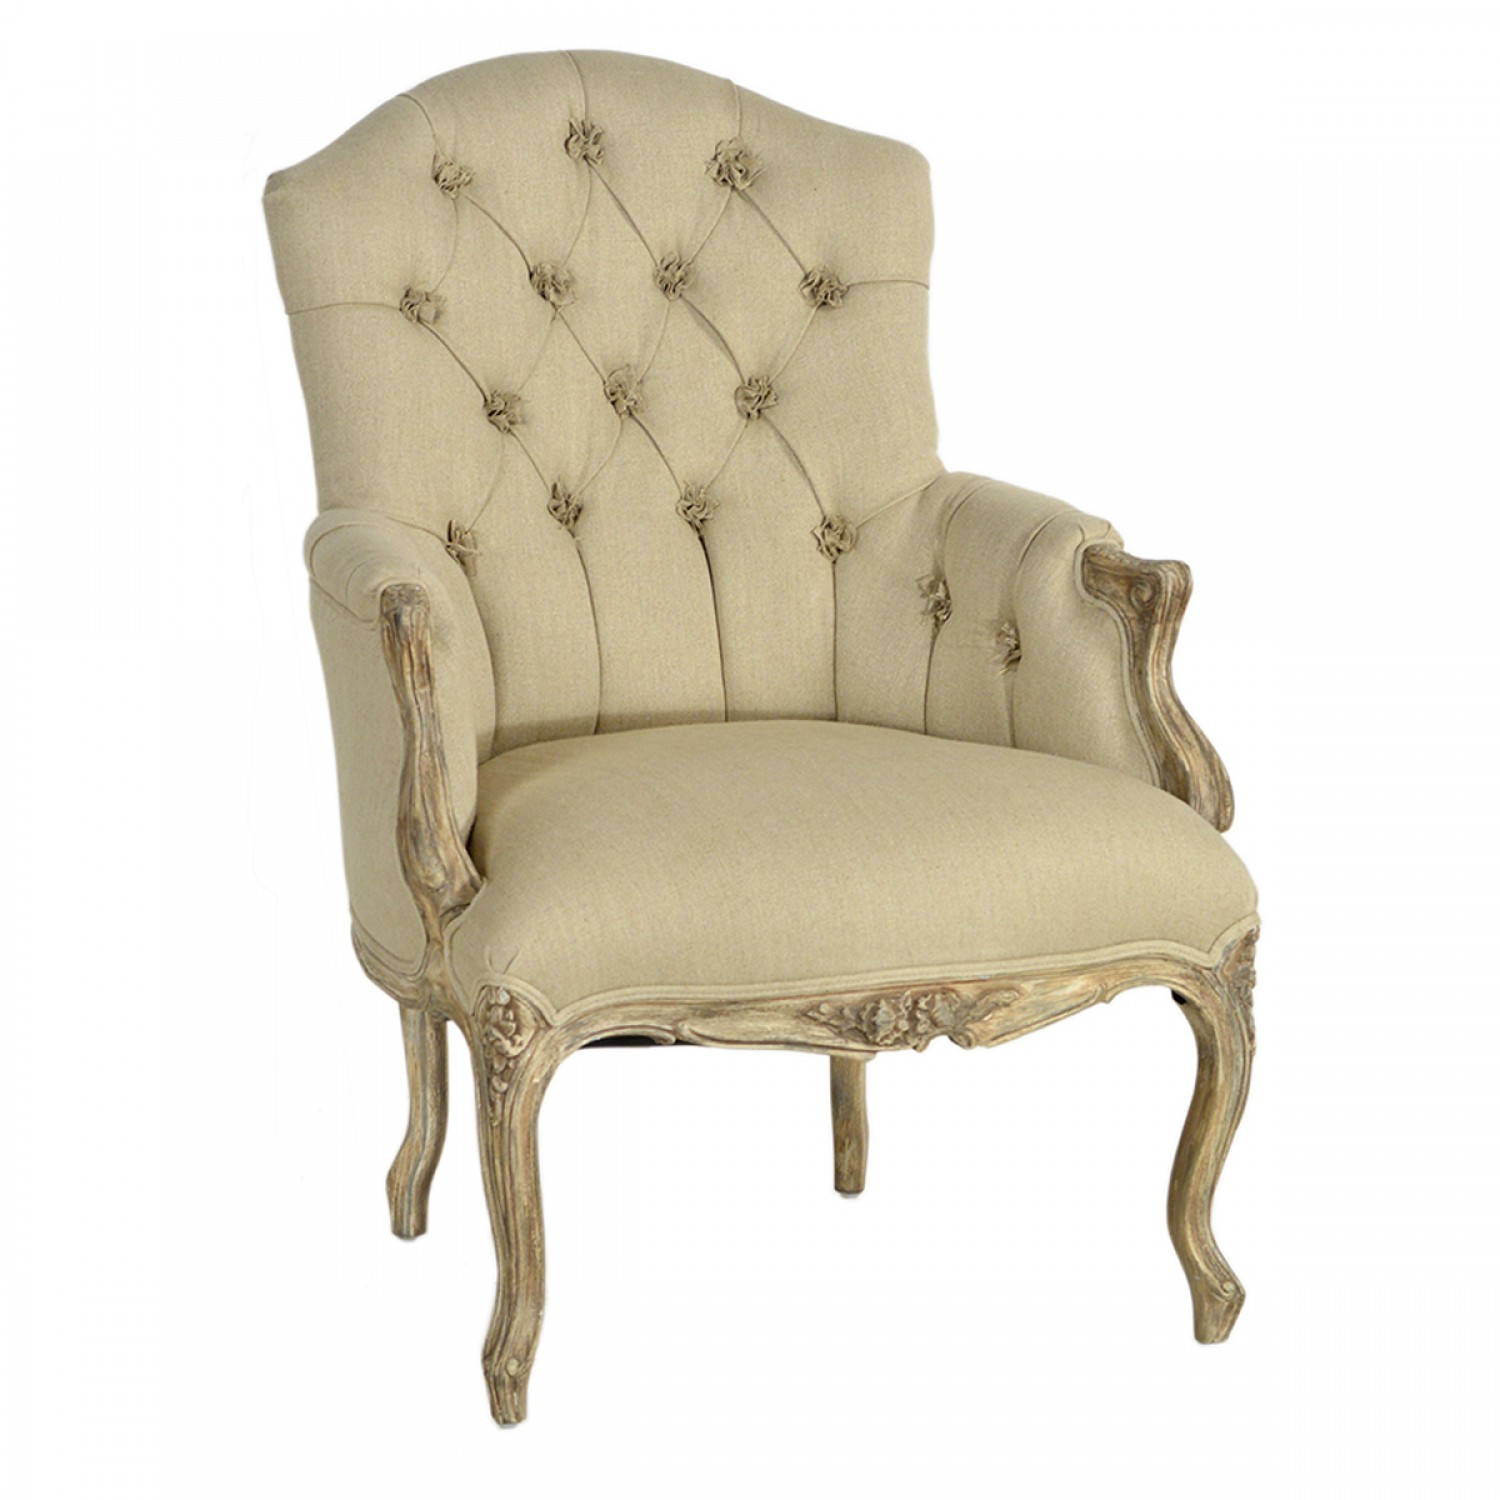 Tufted Chair | Tufted High Back Chair | Tufted Chair